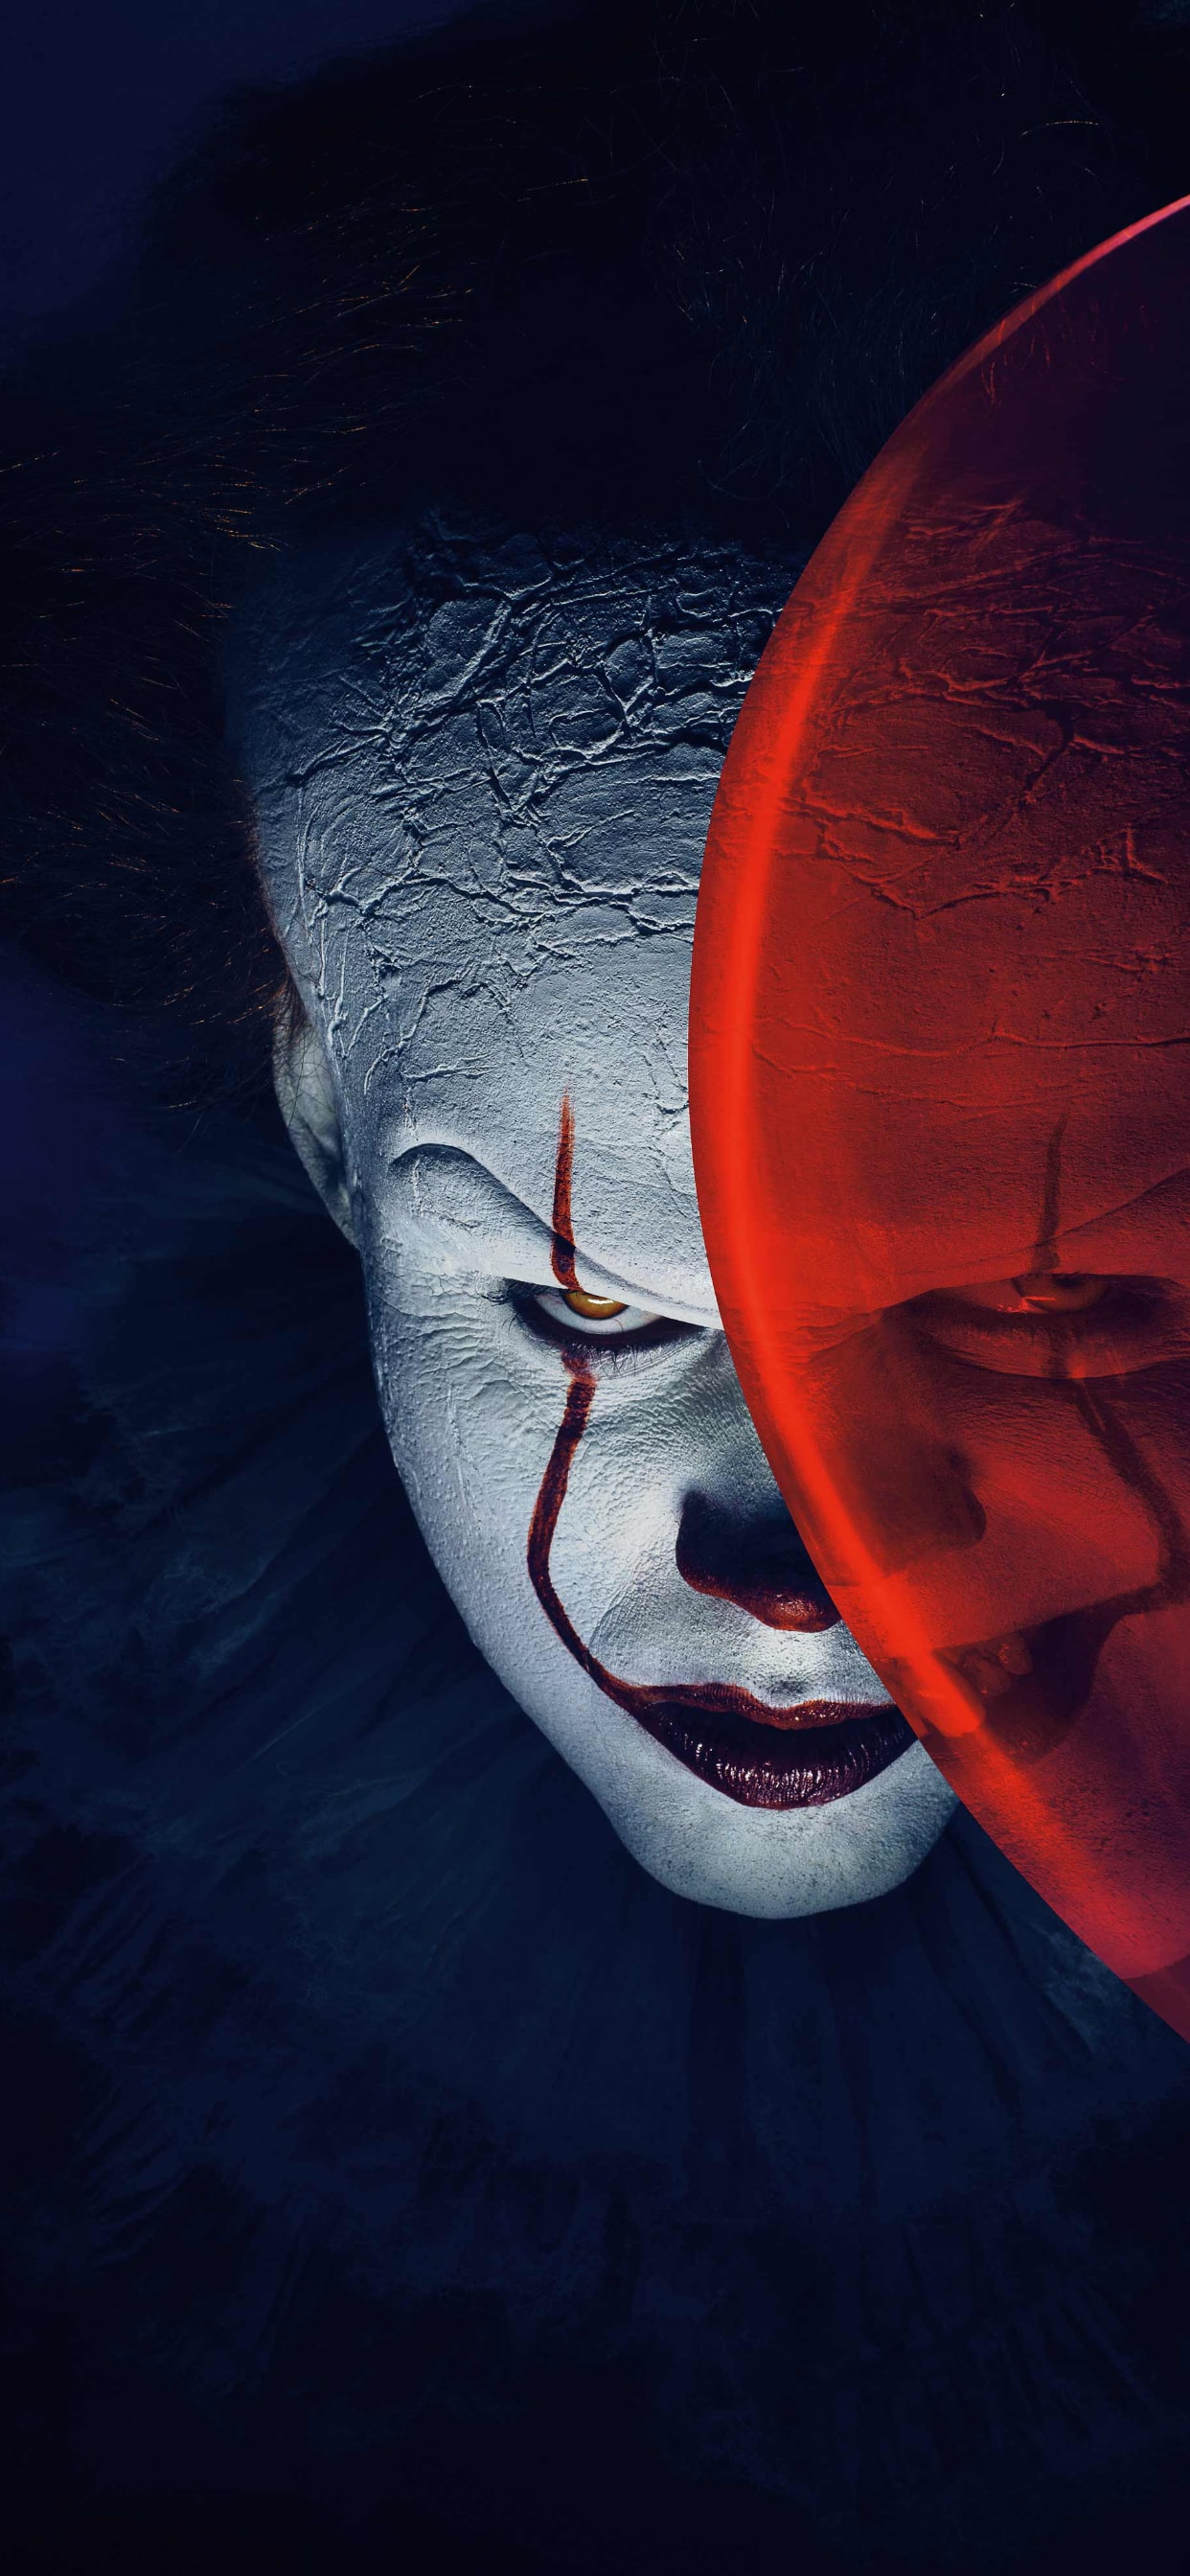 Pennywise Wallpaper For Iphone 11 Max Kolpaper Awesome Free Hd Wallpapers